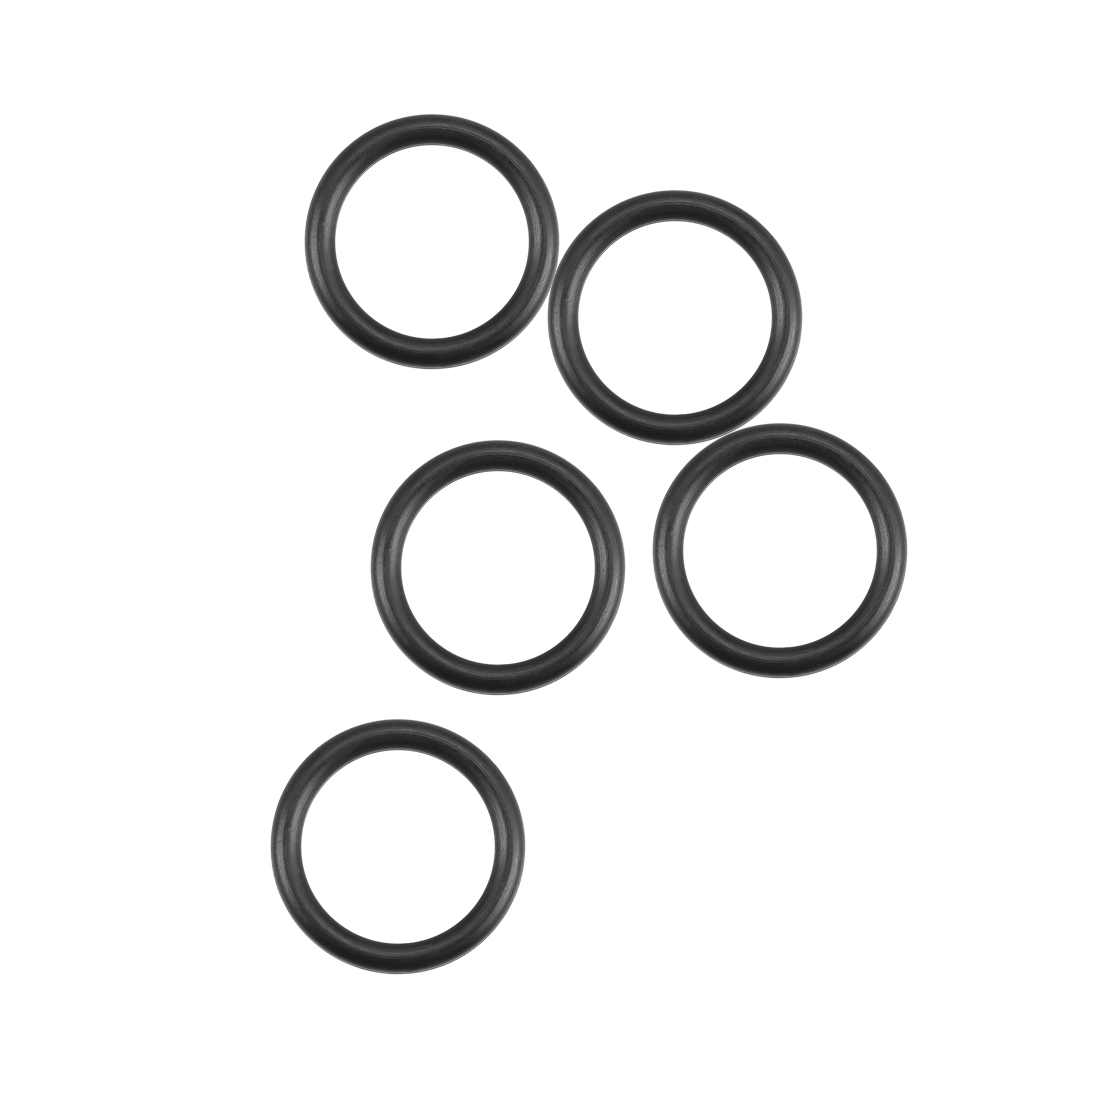 O-Rings Nitrile Rubber 10.8mm x 14.4mm x 1.8mm Round Seal Gasket 5Pcs